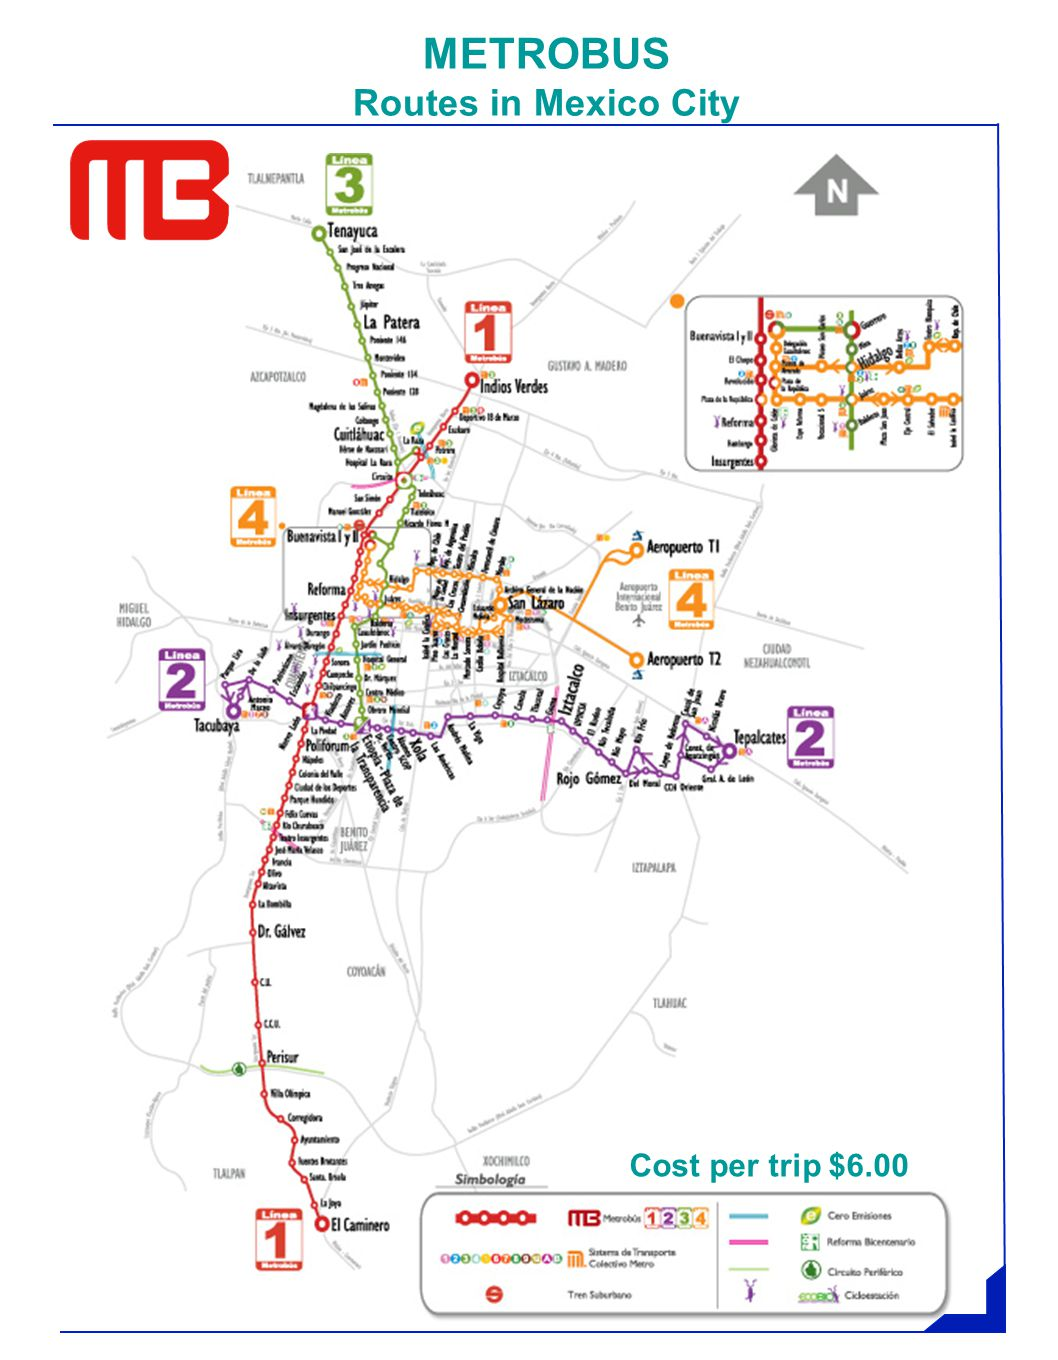 METROBUS Routes in Mexico City Cost per trip $6.00